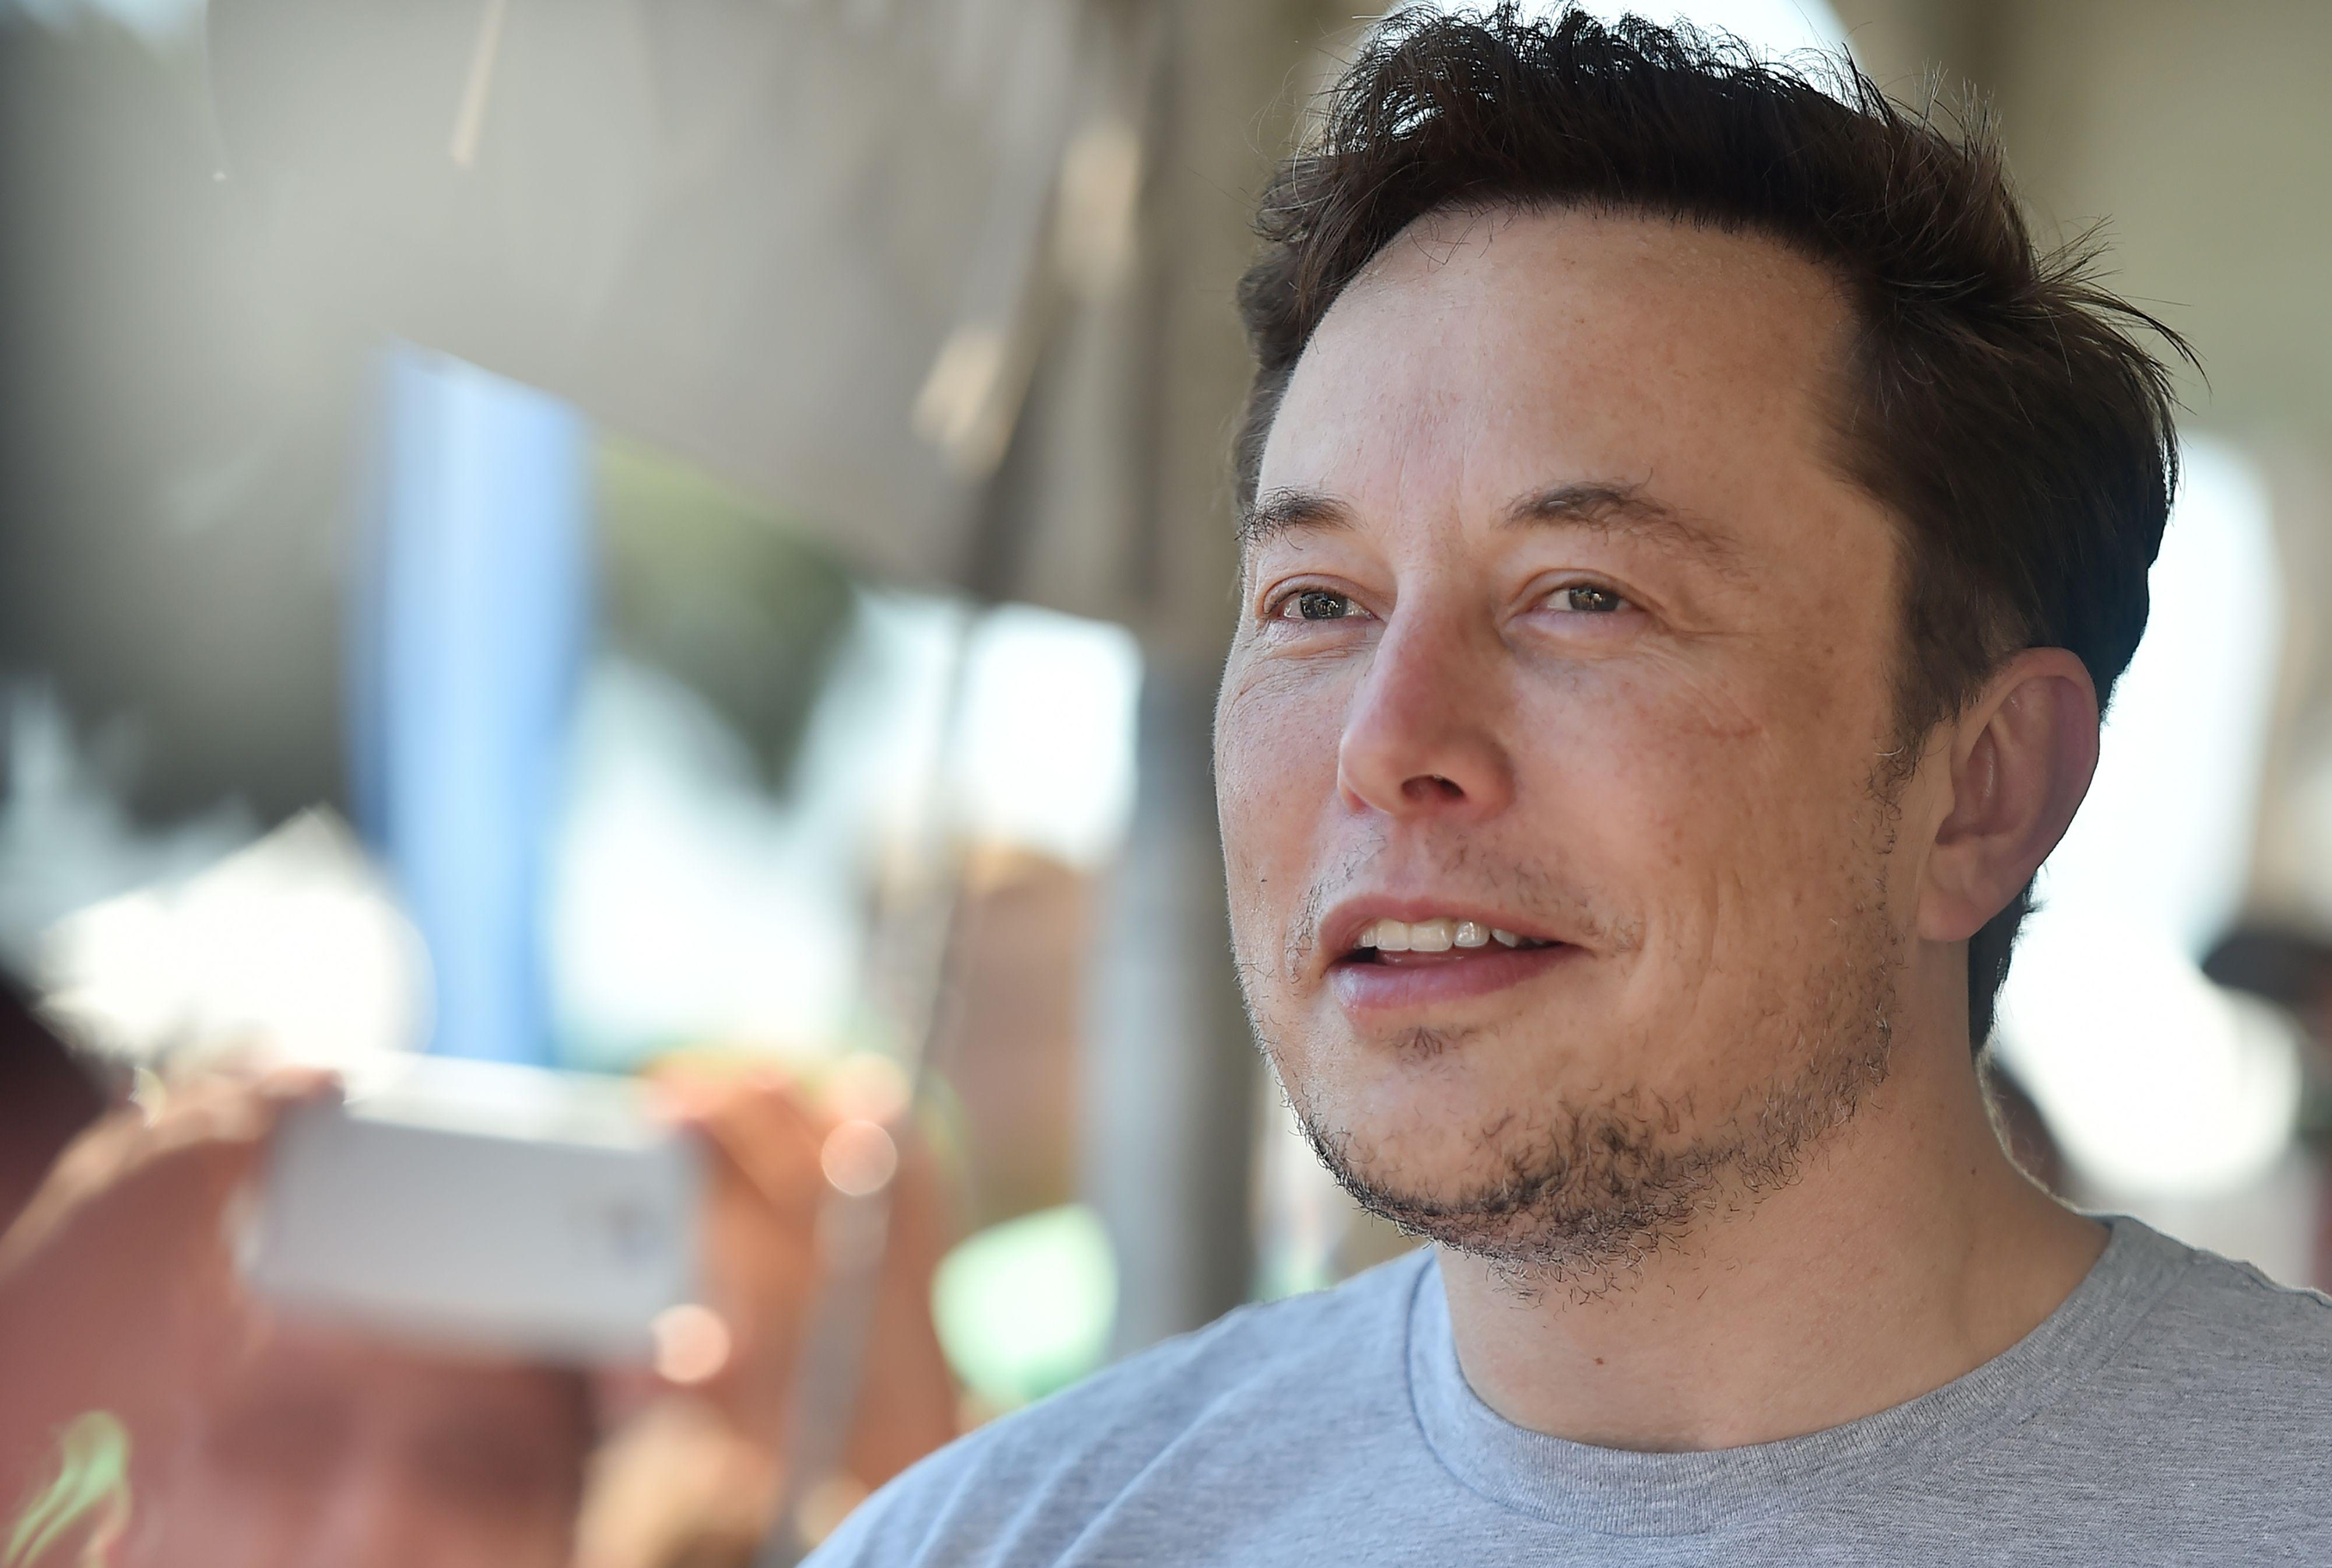 Elon Musk sat down for a two-and-a-half hour interview with Joe Rogan.